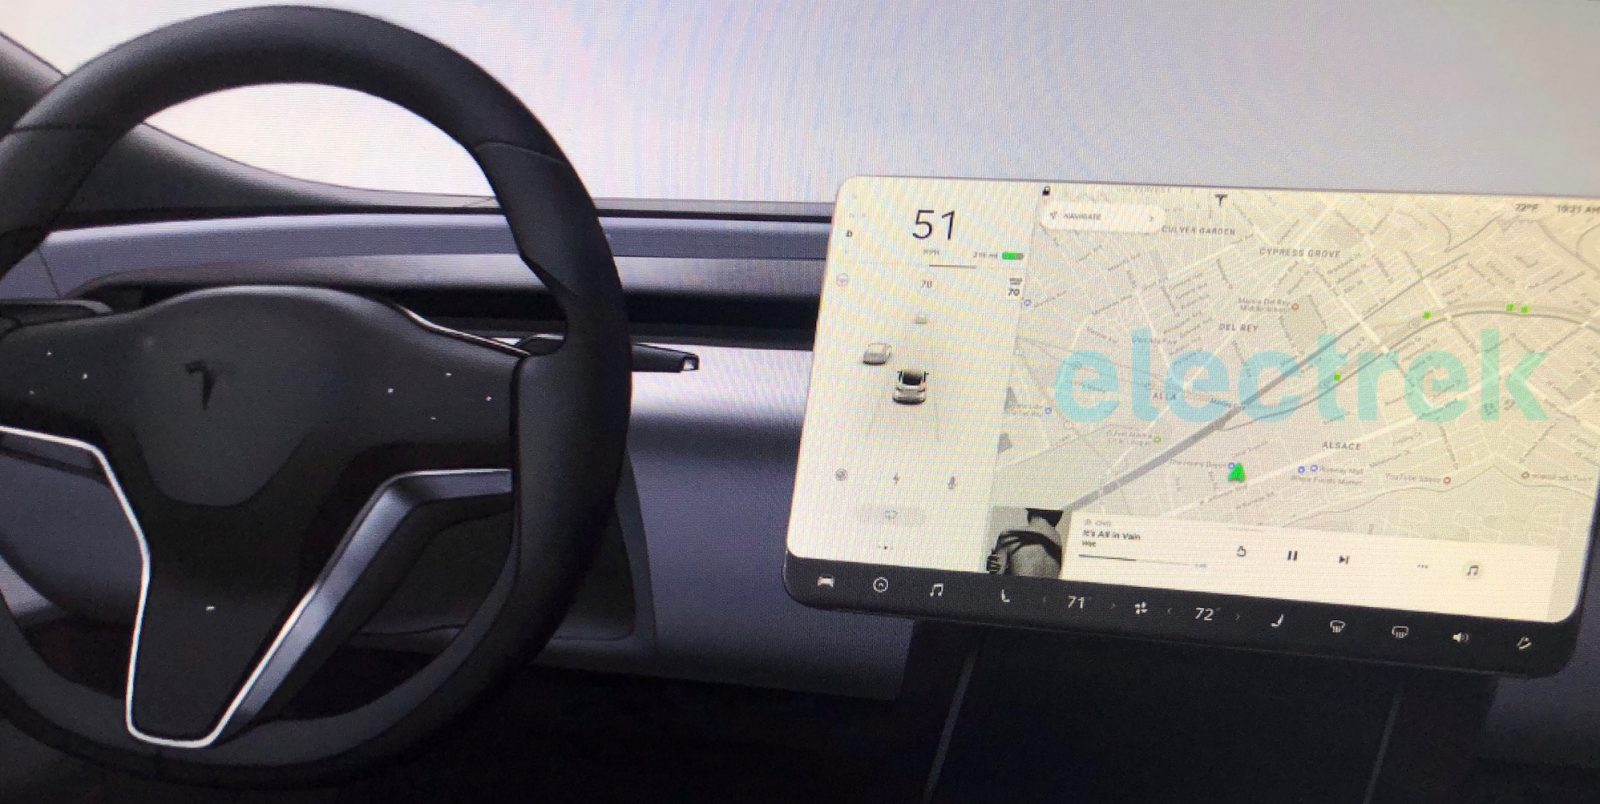 Tesla Is Planning A Big Model S Model X Interior Refresh In Q3 2019